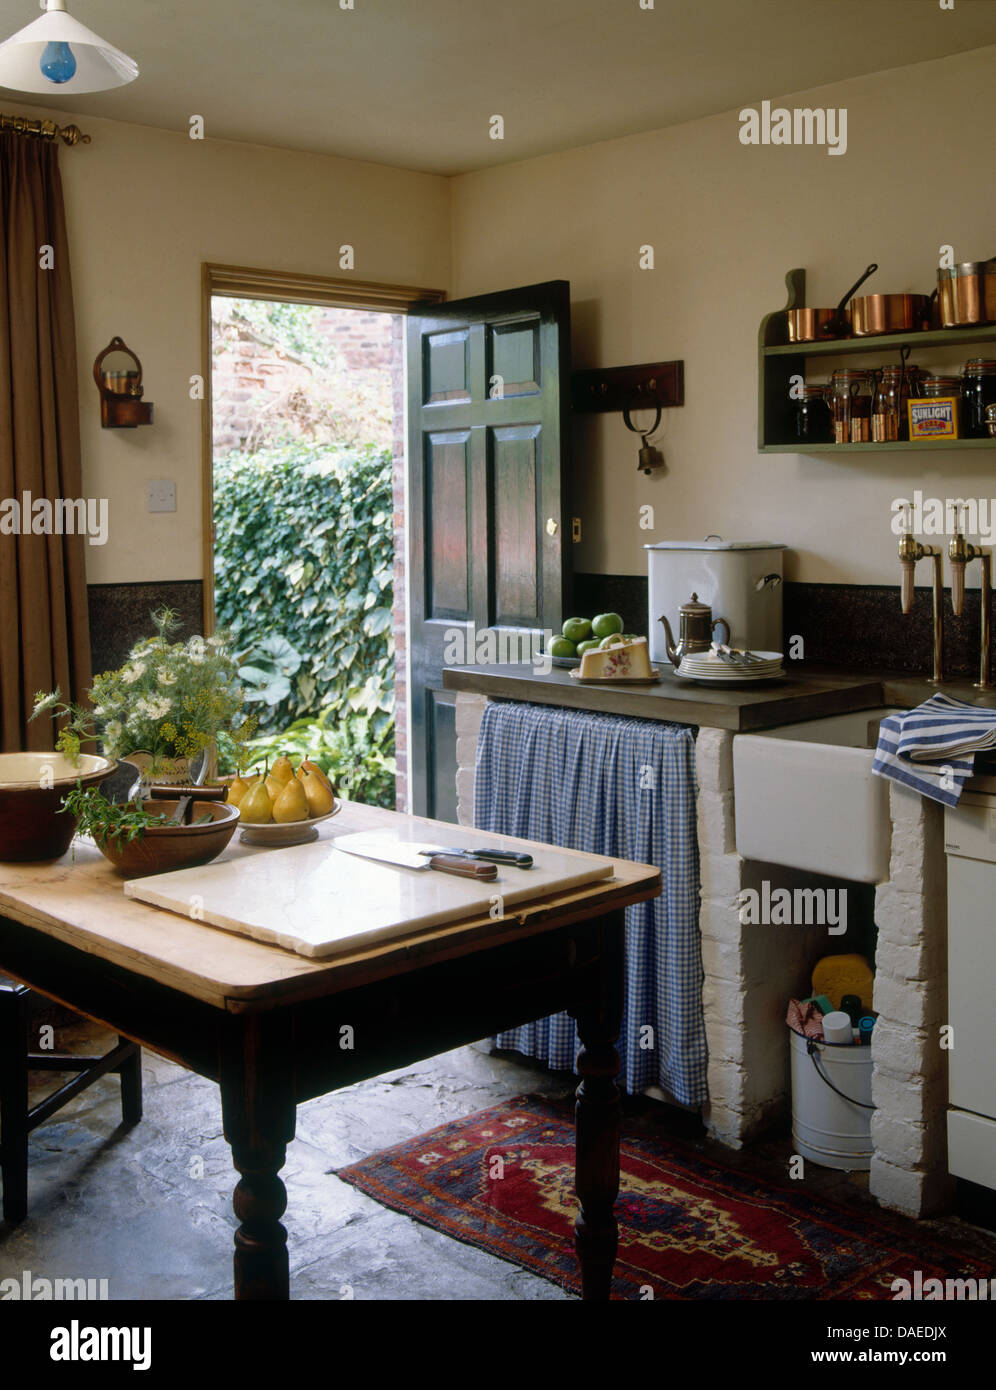 Wooden Table In Center Rustic Country Cottage Kitchen With